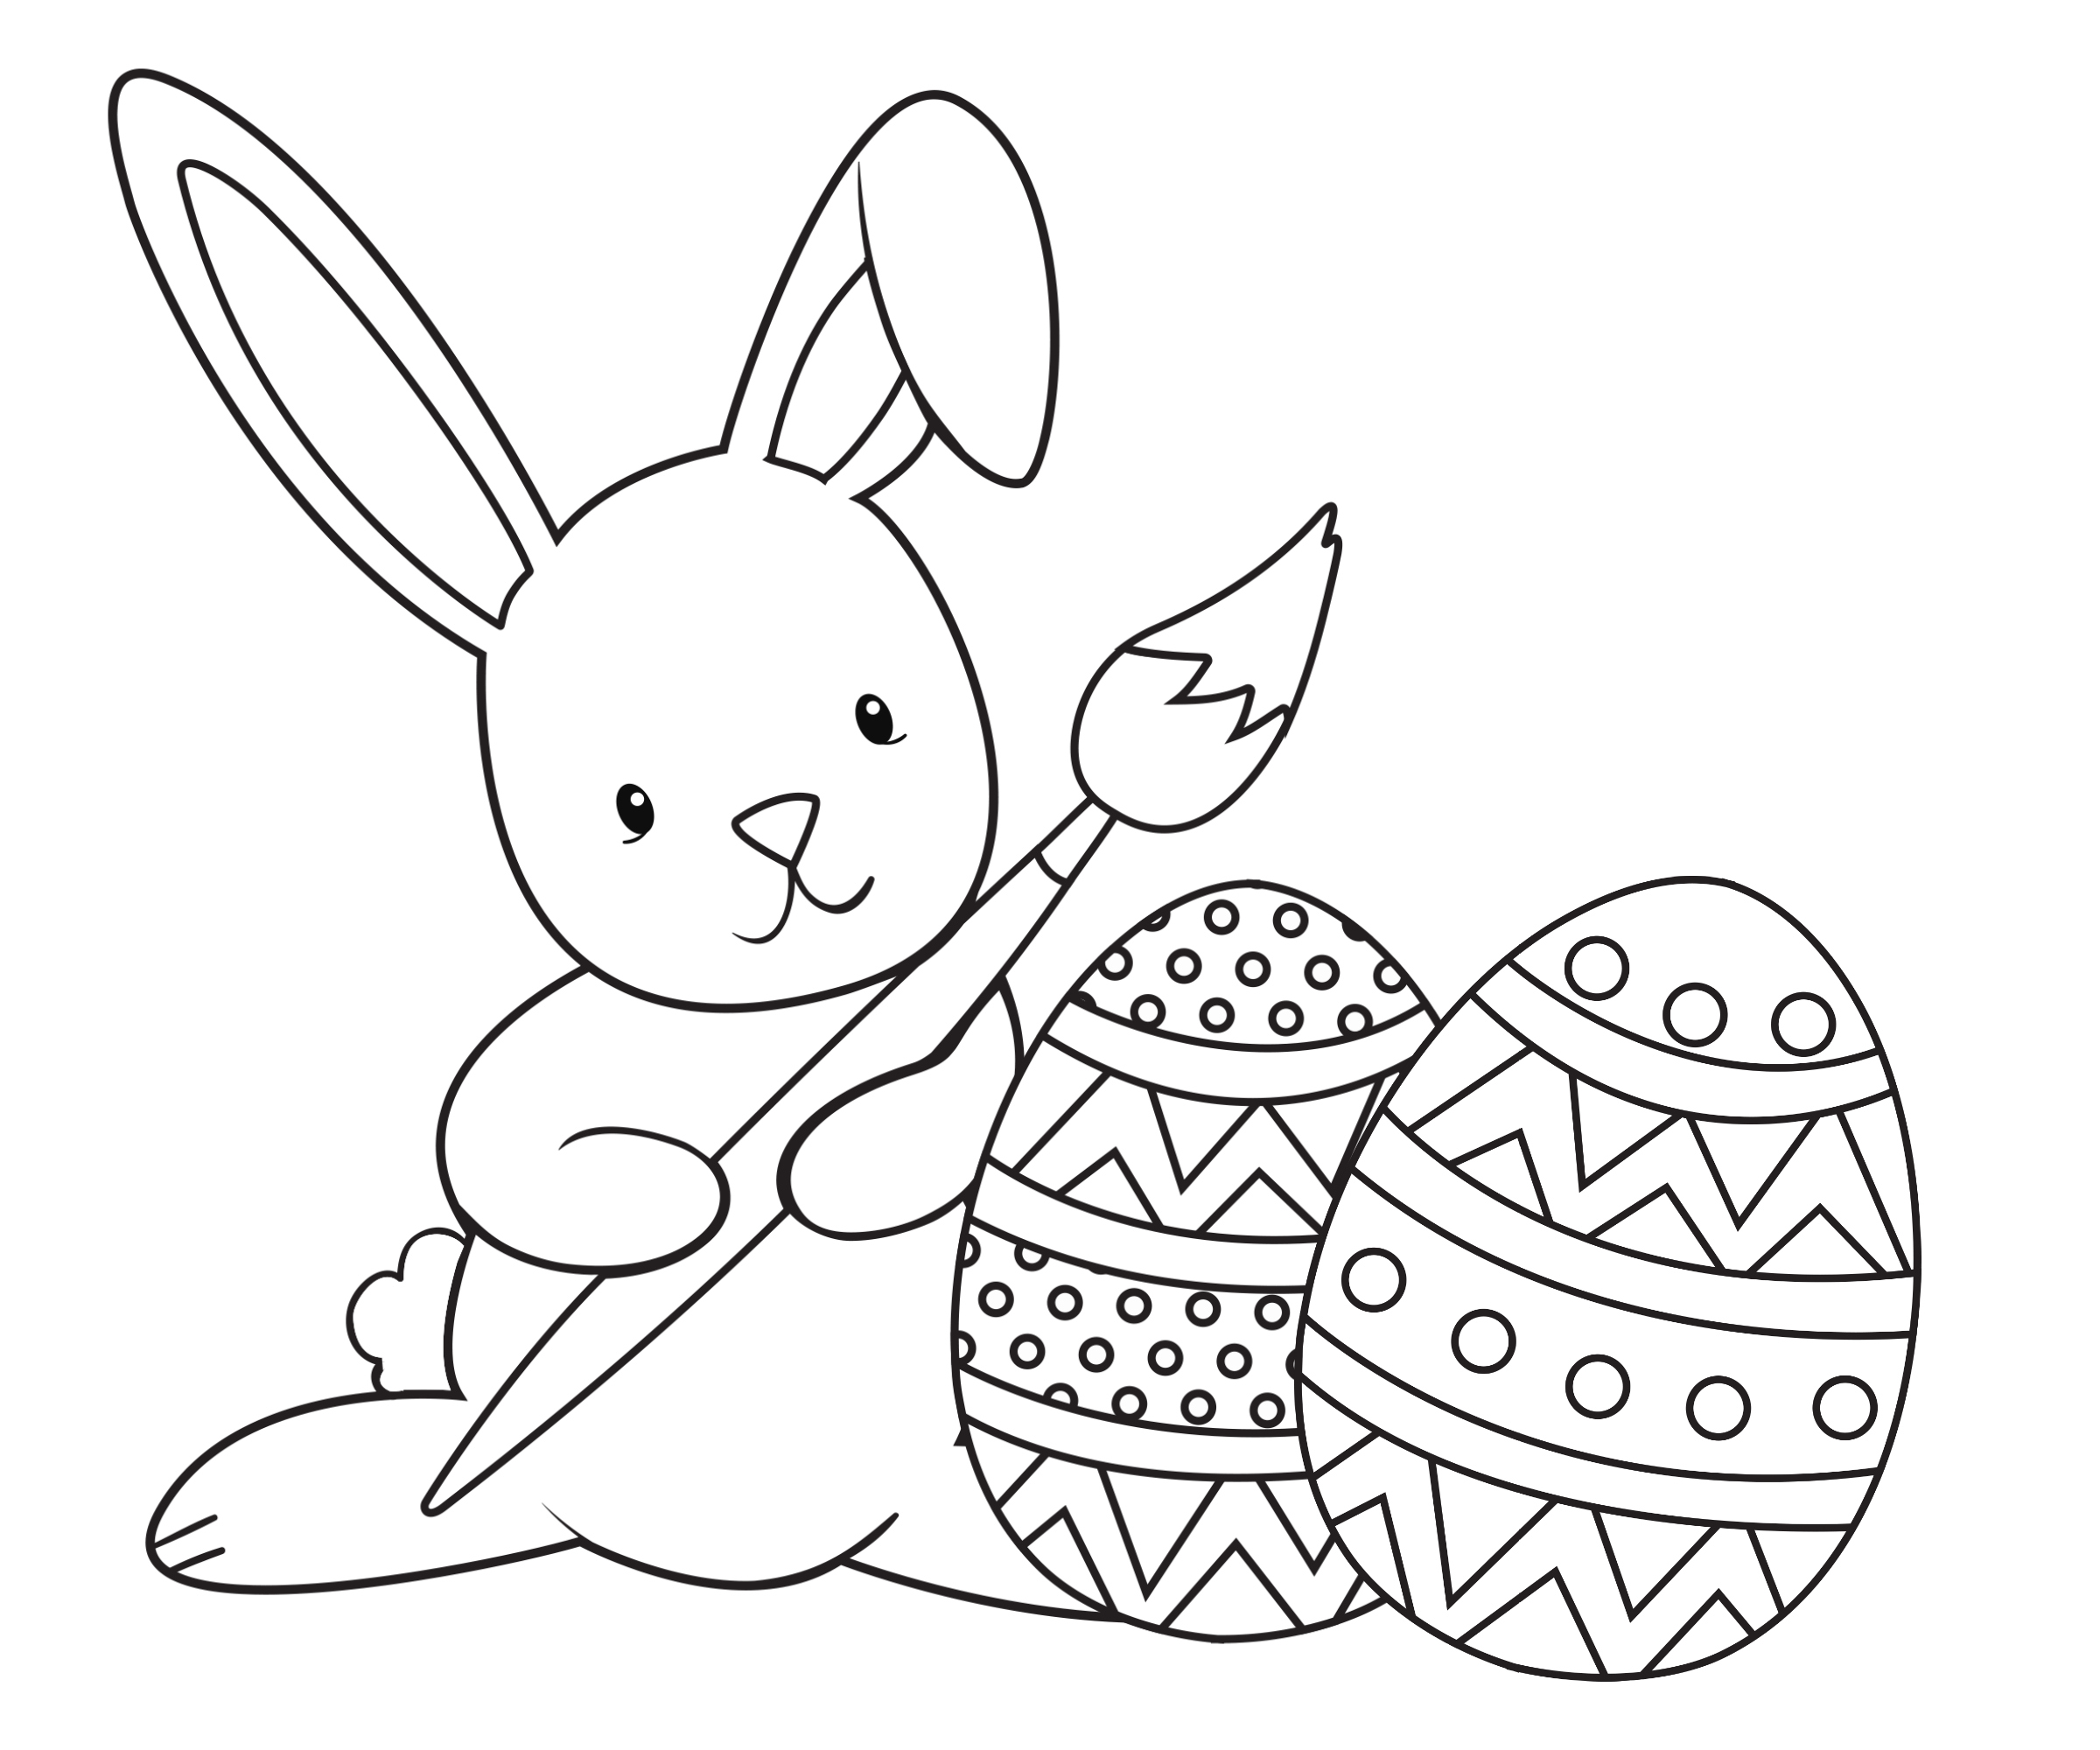 Easter Coloring Pages for Kids Crazy Little Projects Download Of Delighted Bunny Print Out Coloring Pages Easter for Kids Crazy Printable